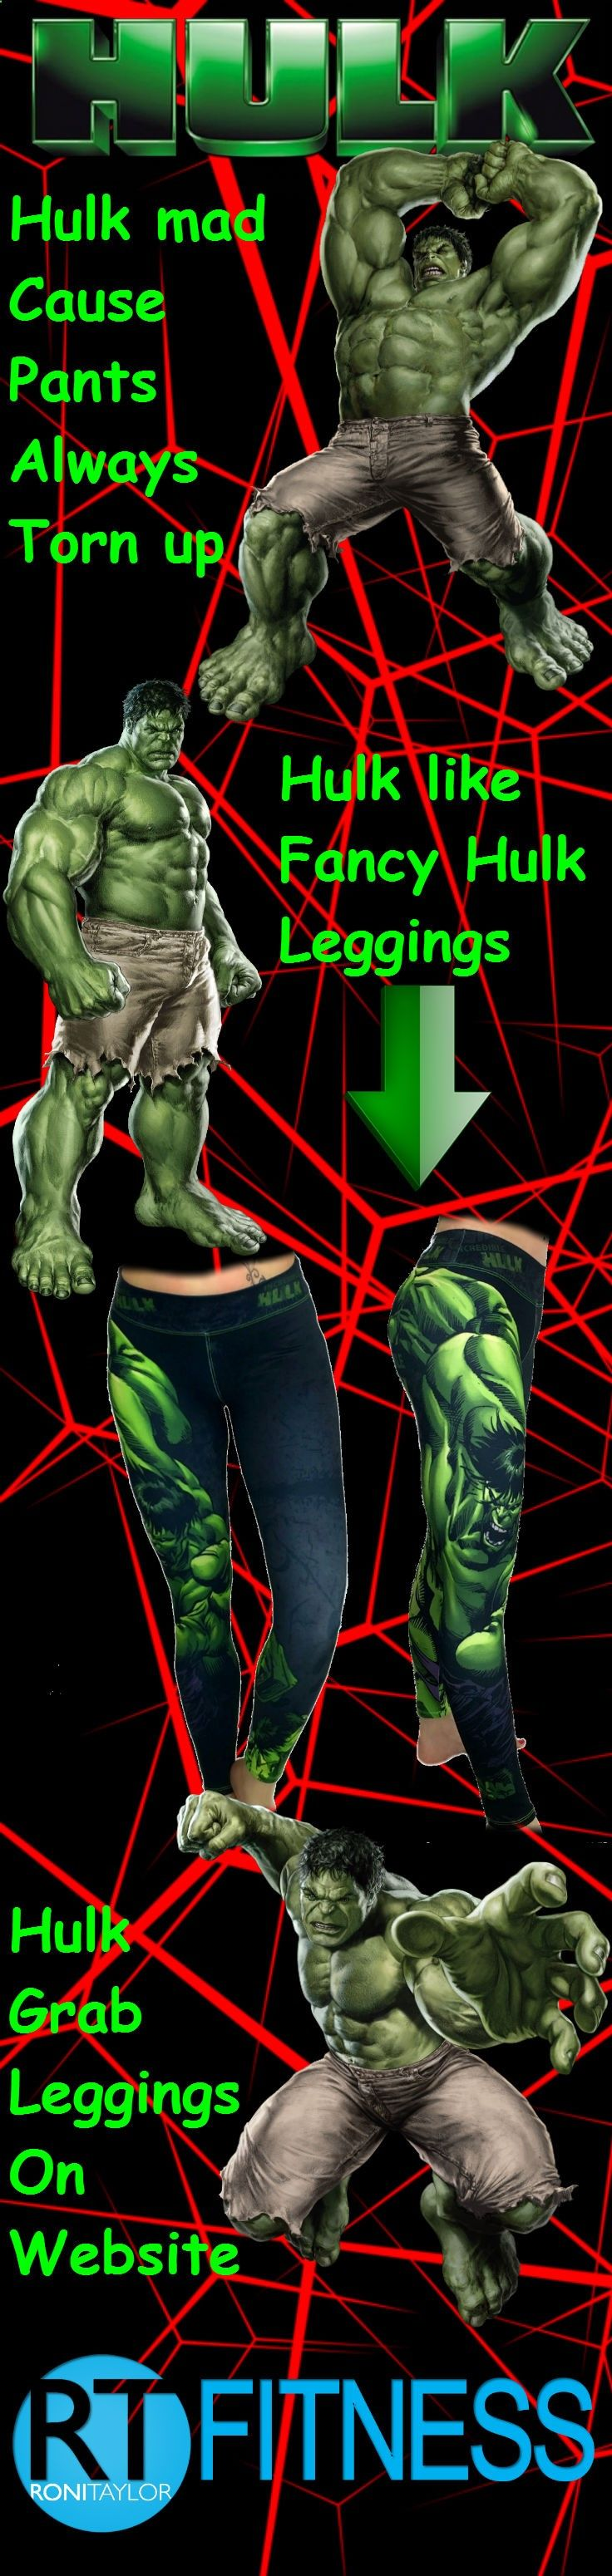 Yes, we know, the Hulk isnt the most fashion savvy superhero of all time, but that doesnt mean you cant show your love for the big green guy by grabbing a pair of our killer Hulk leggings! Each pair is made from durable materials that have been bombarded with gamma rays to ensure you glow in the dark. Thats a little joke. Our leggings dont have any gamma radiation used in the manufacturing process. Kryptonite on the other hand.....